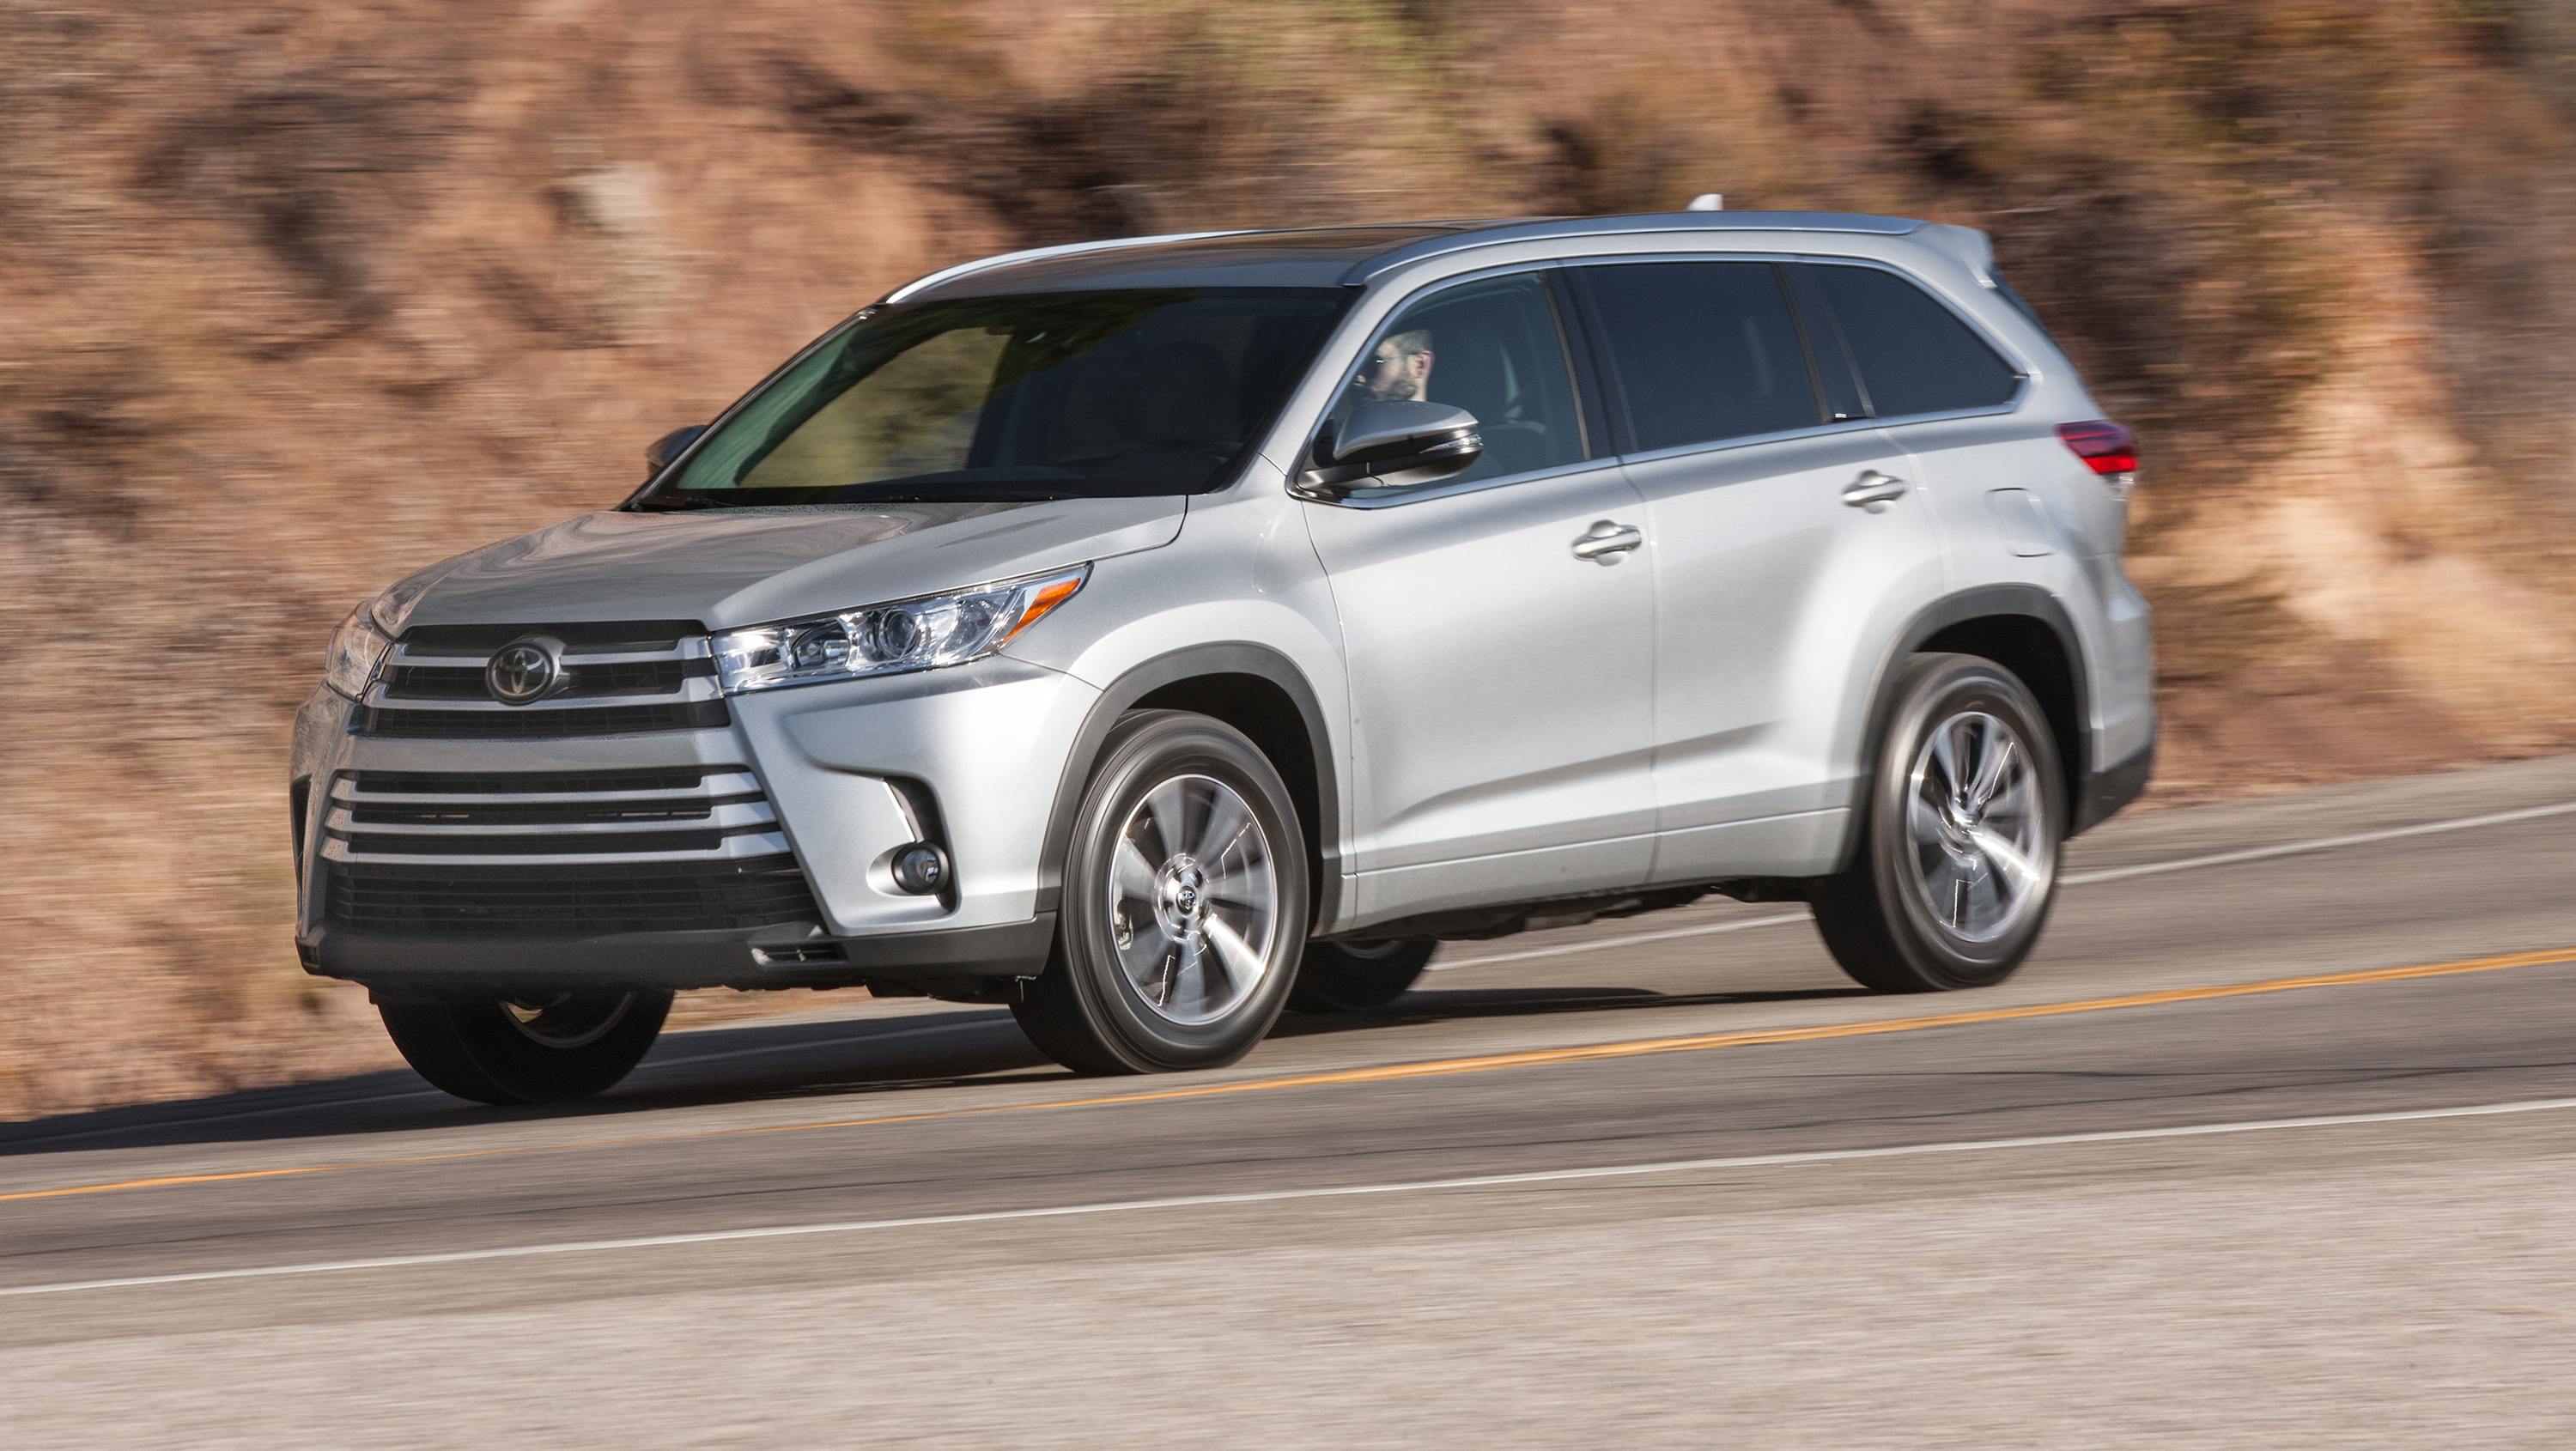 Toyota Kluger photo 173462